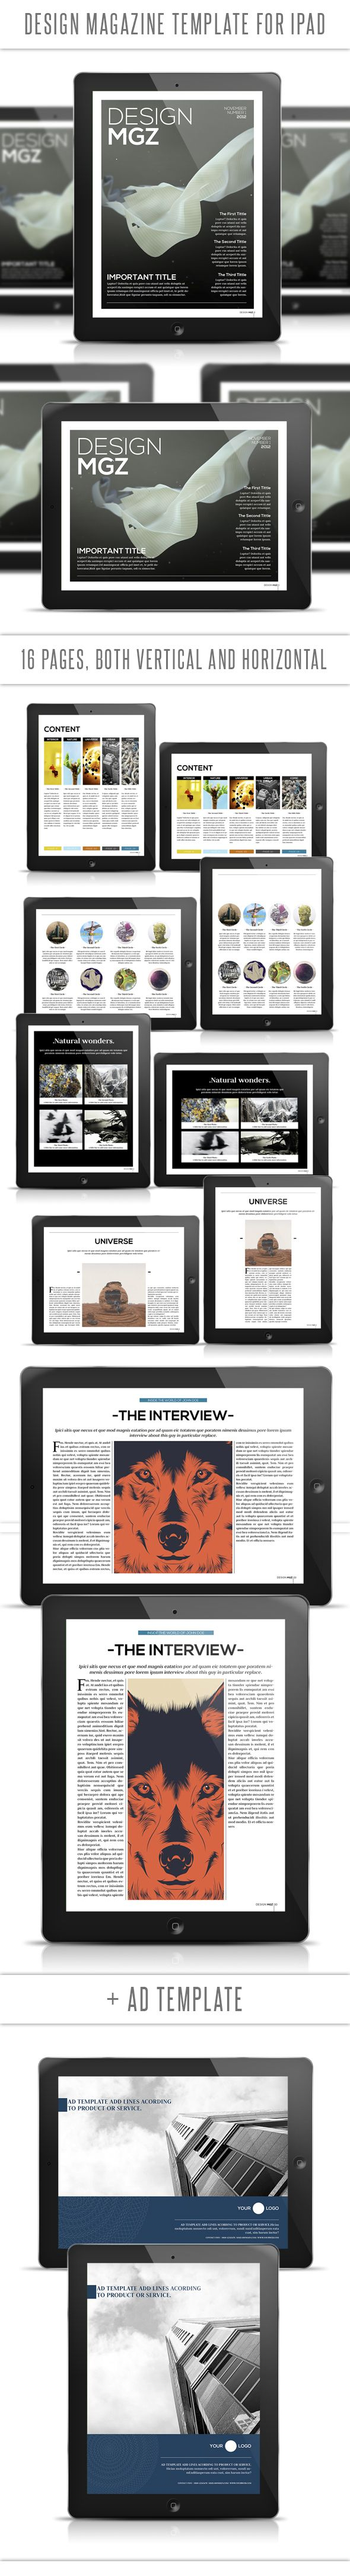 This Ipad tablet magazine template contains a total of 32 pages: 16 portrait view + 16 landscape view. Ipad resolution. Very easy to add your own images and text.    Download from: http://graphicriver.net/item/design-tablet-magazine-template/4681952?ref=luuqas